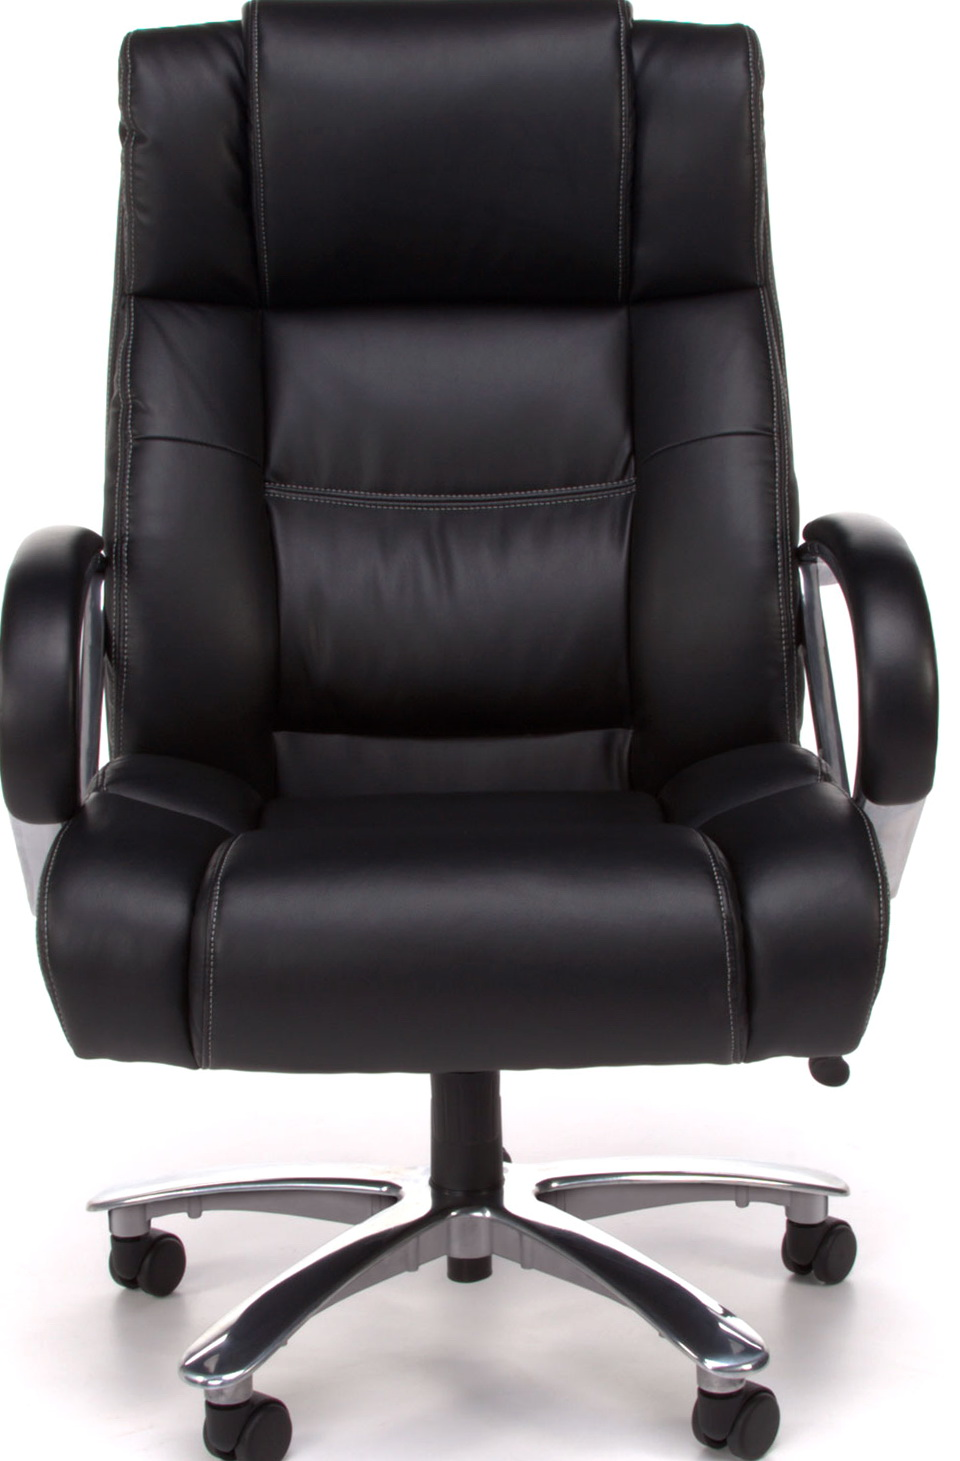 Executive Office Chairs Big And Tall